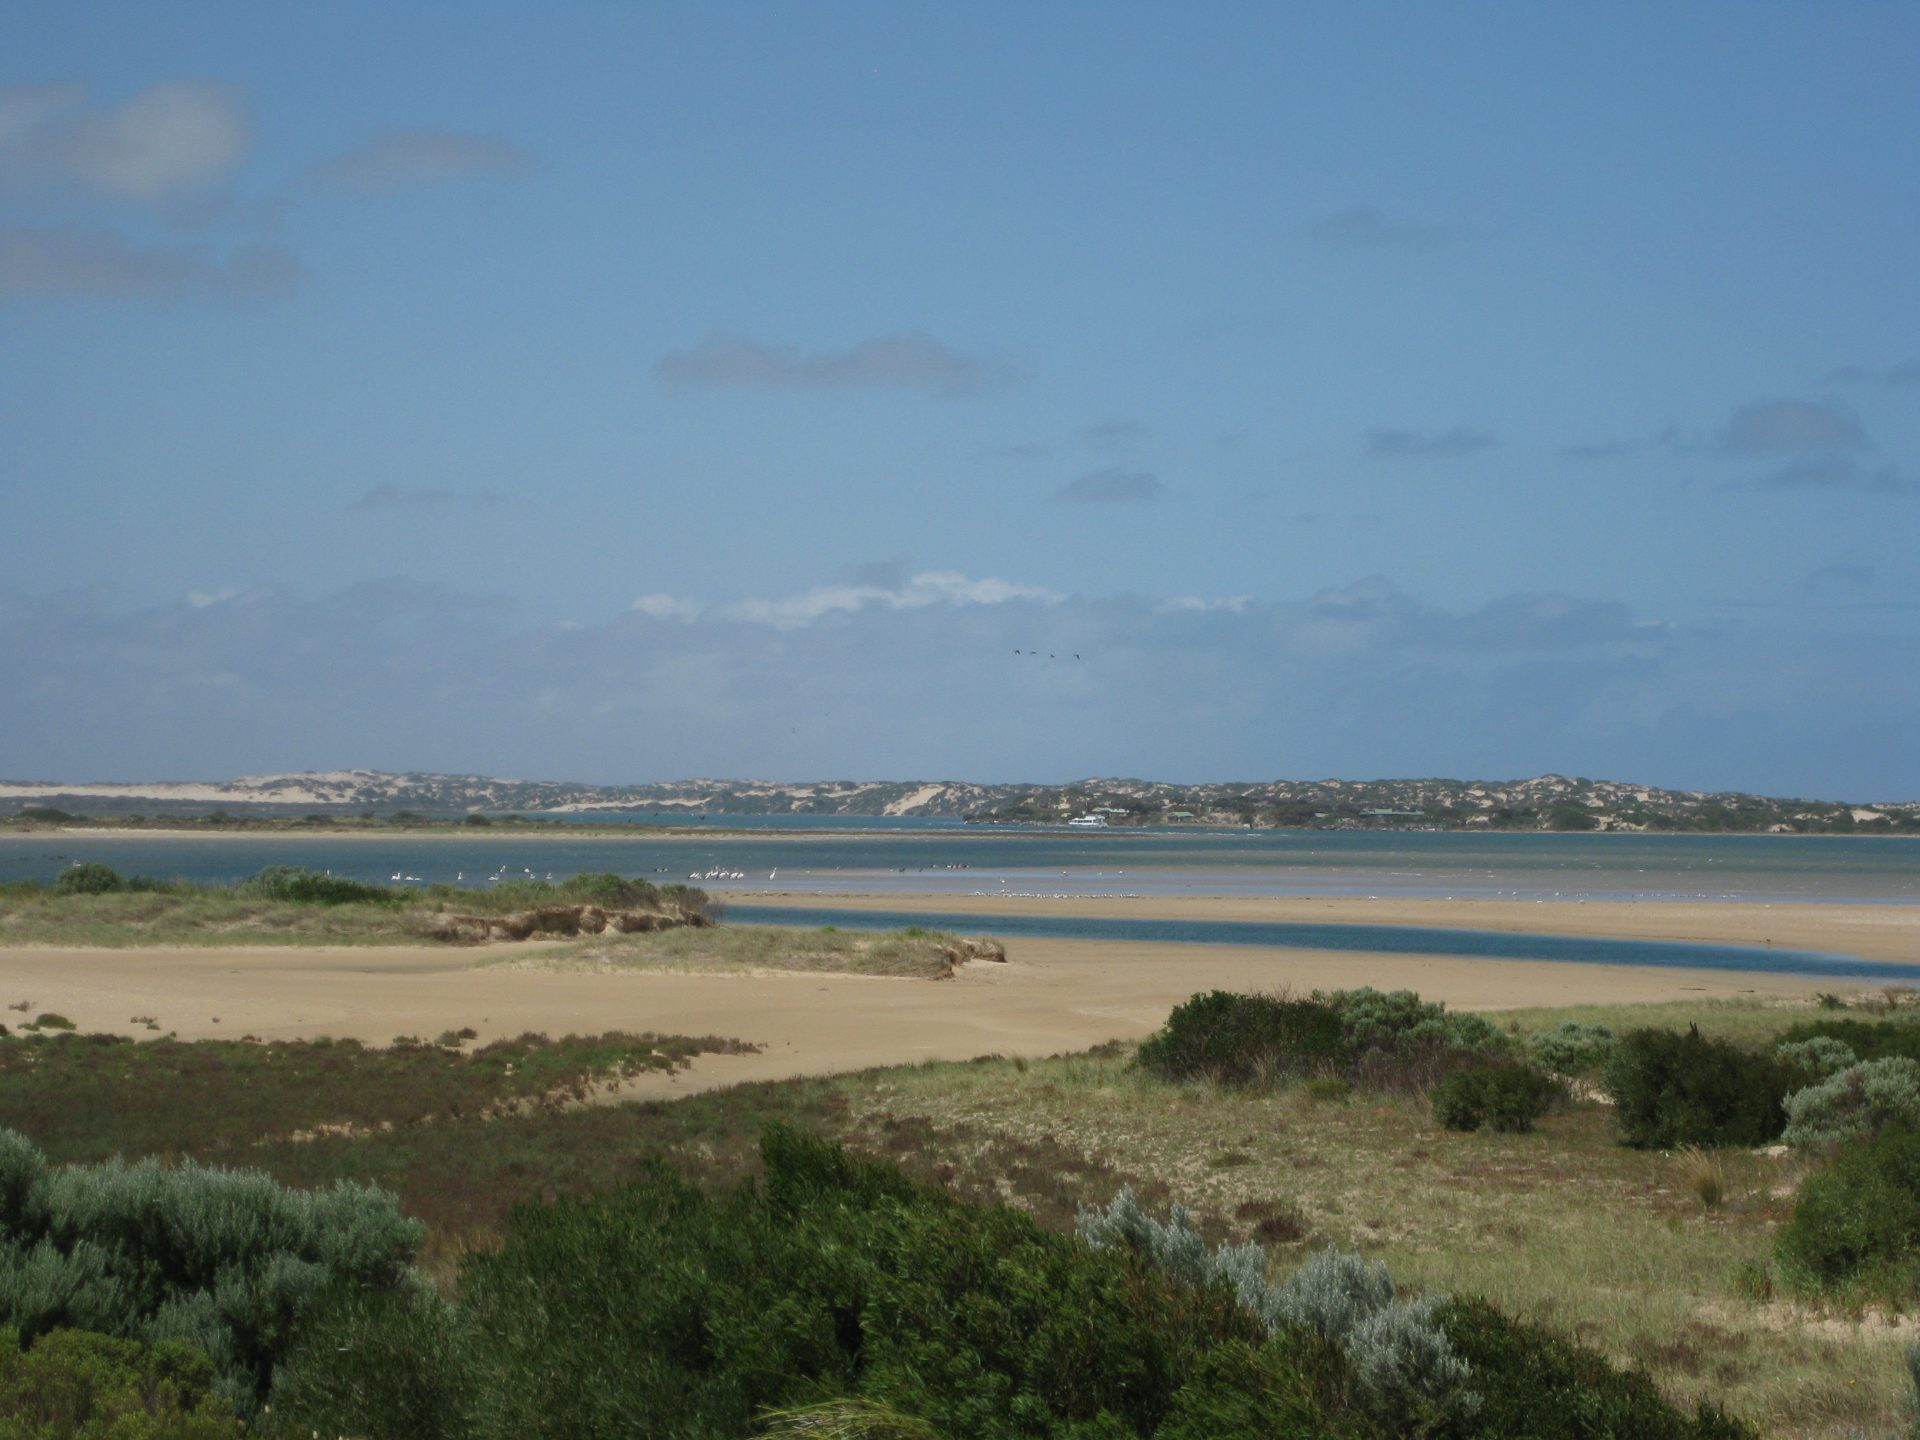 Entrance_to_Coorong